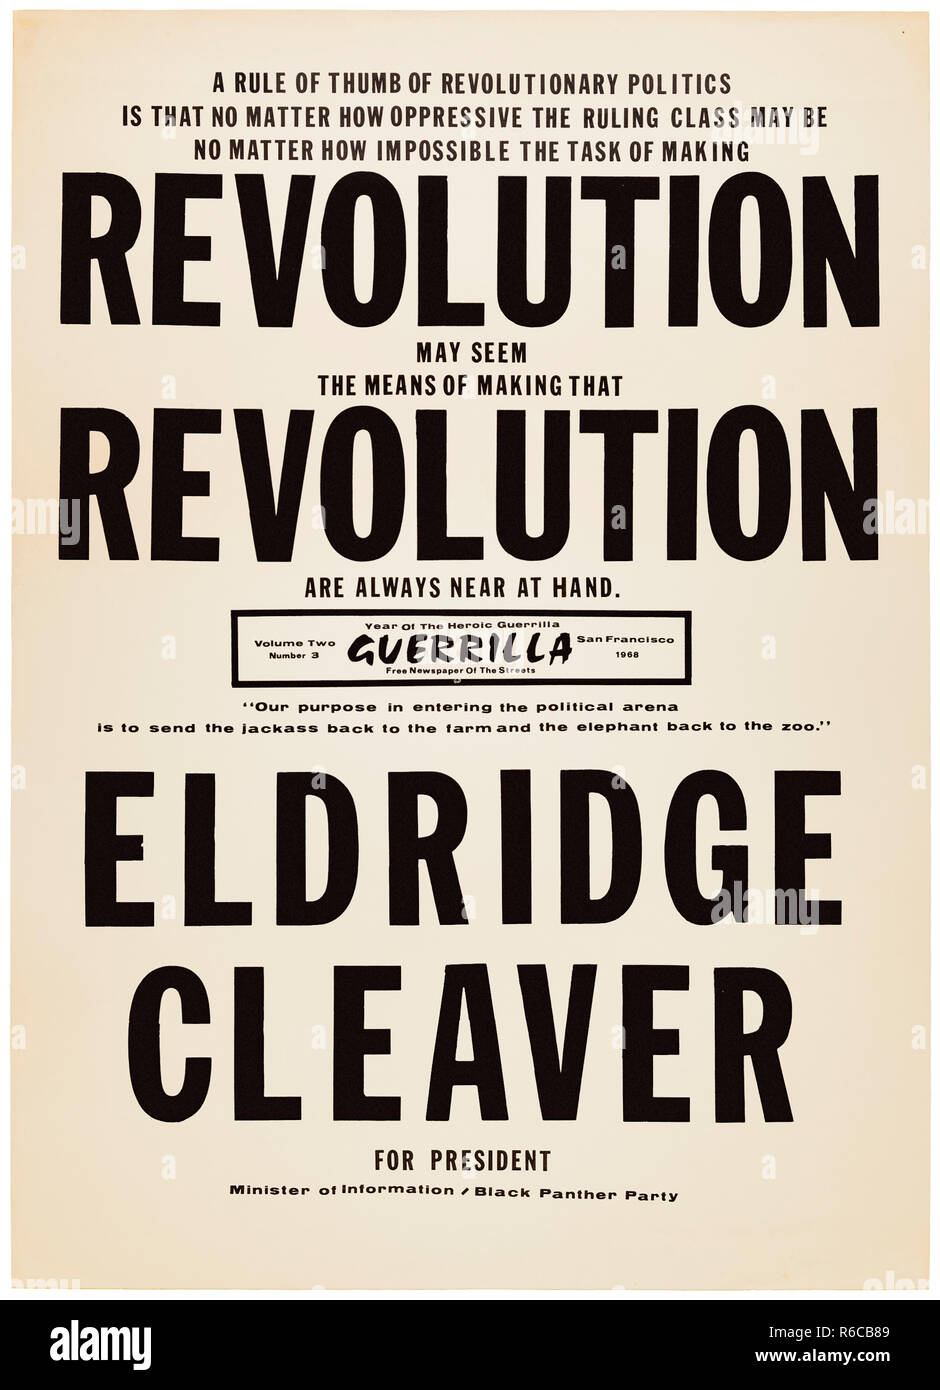 'Revolution Revolution Eldridge Cleaver for President' 1968 presidential campaign poster as candidate for the Black Panther Party. See more information below. Stock Photo